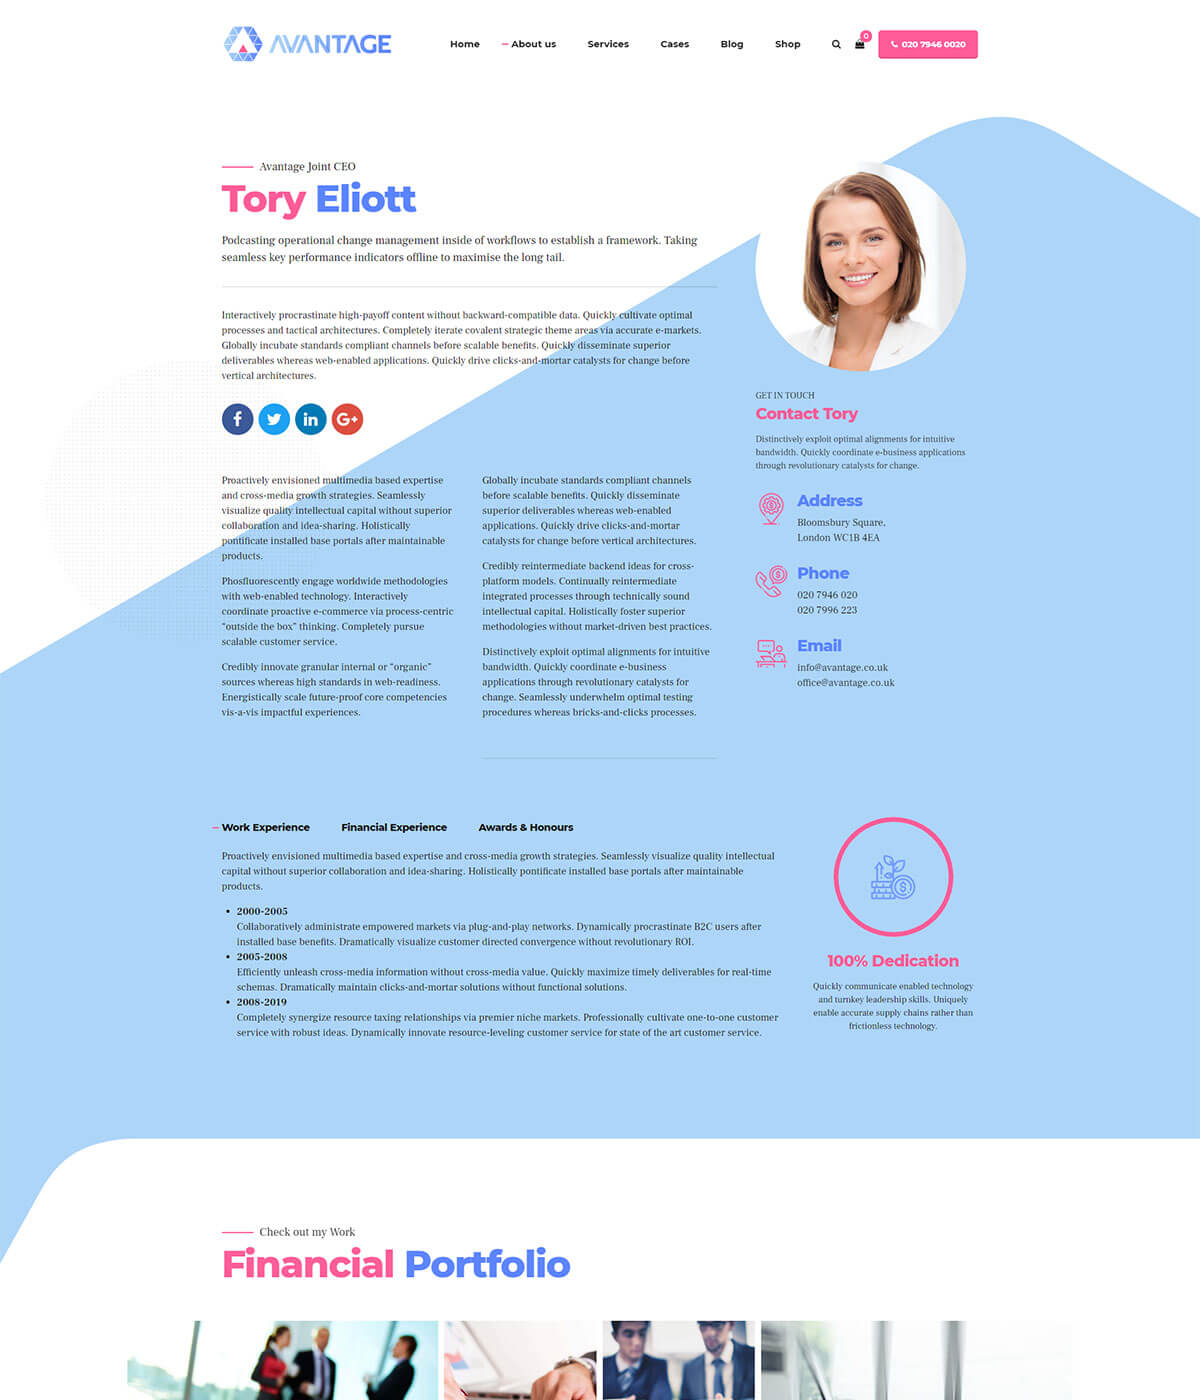 http://avantage.bold-themes.com/wp-content/uploads/2019/05/financial-02-about-me.jpg